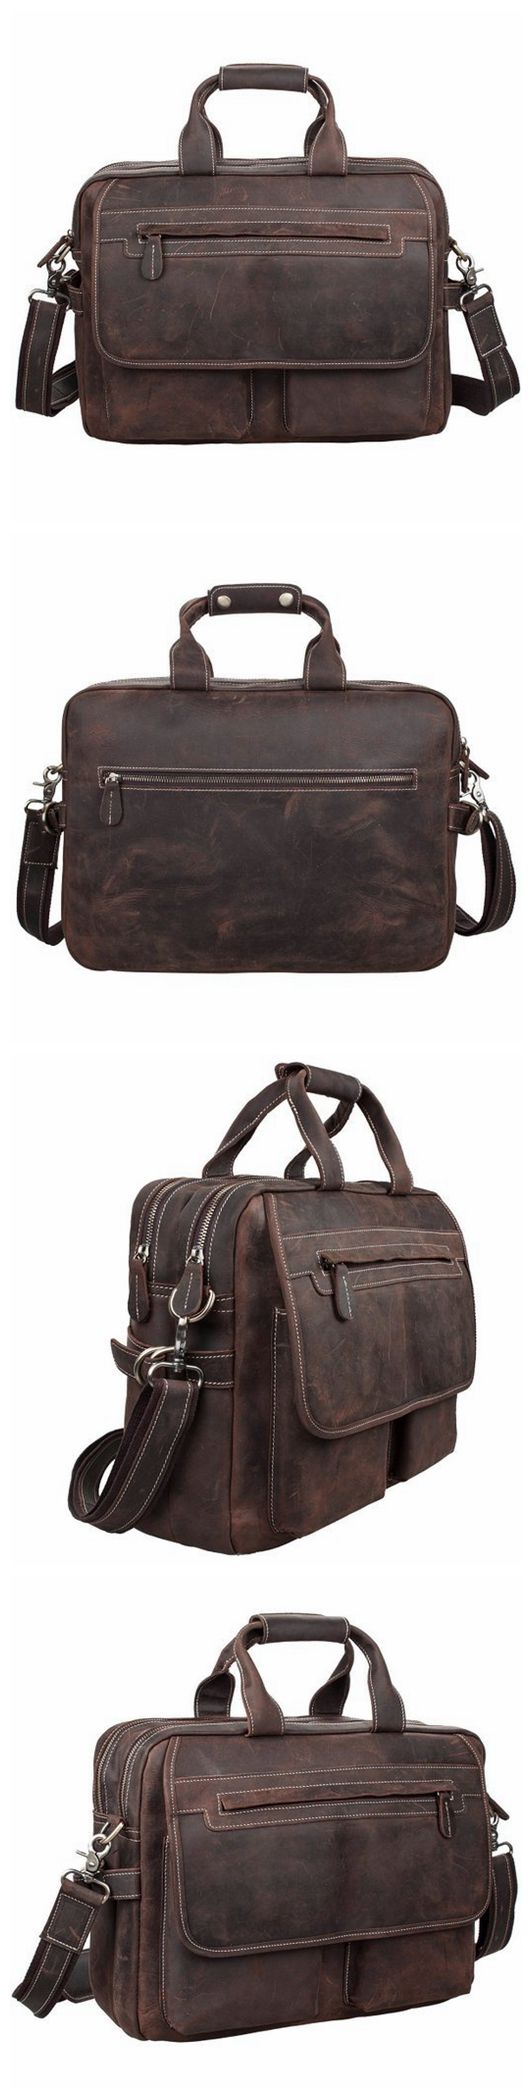 Handmade Vintage Style Leather Briefcase Messenger Bag Satchel Bag Crossbody Shoulder Bag